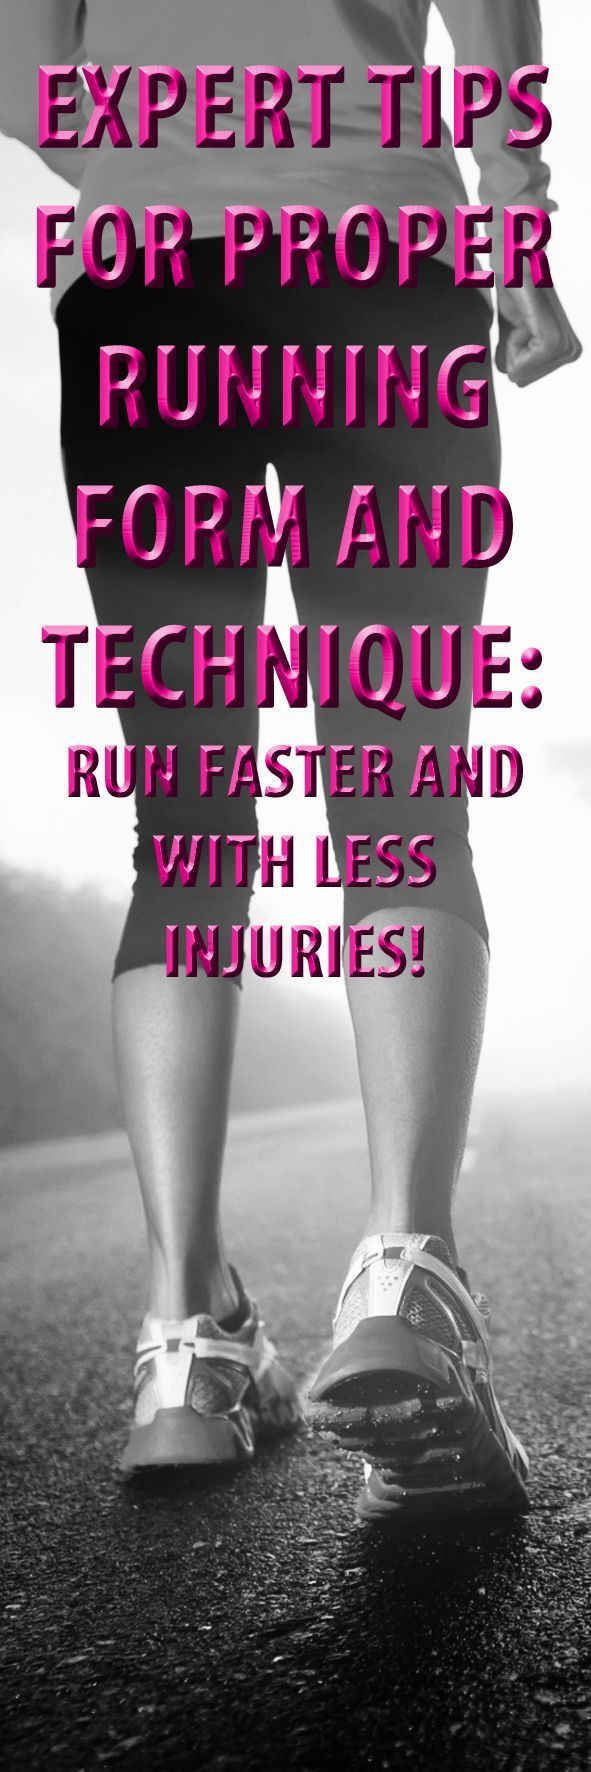 Expert Tips For Proper Running Form And Technique Run Faster And